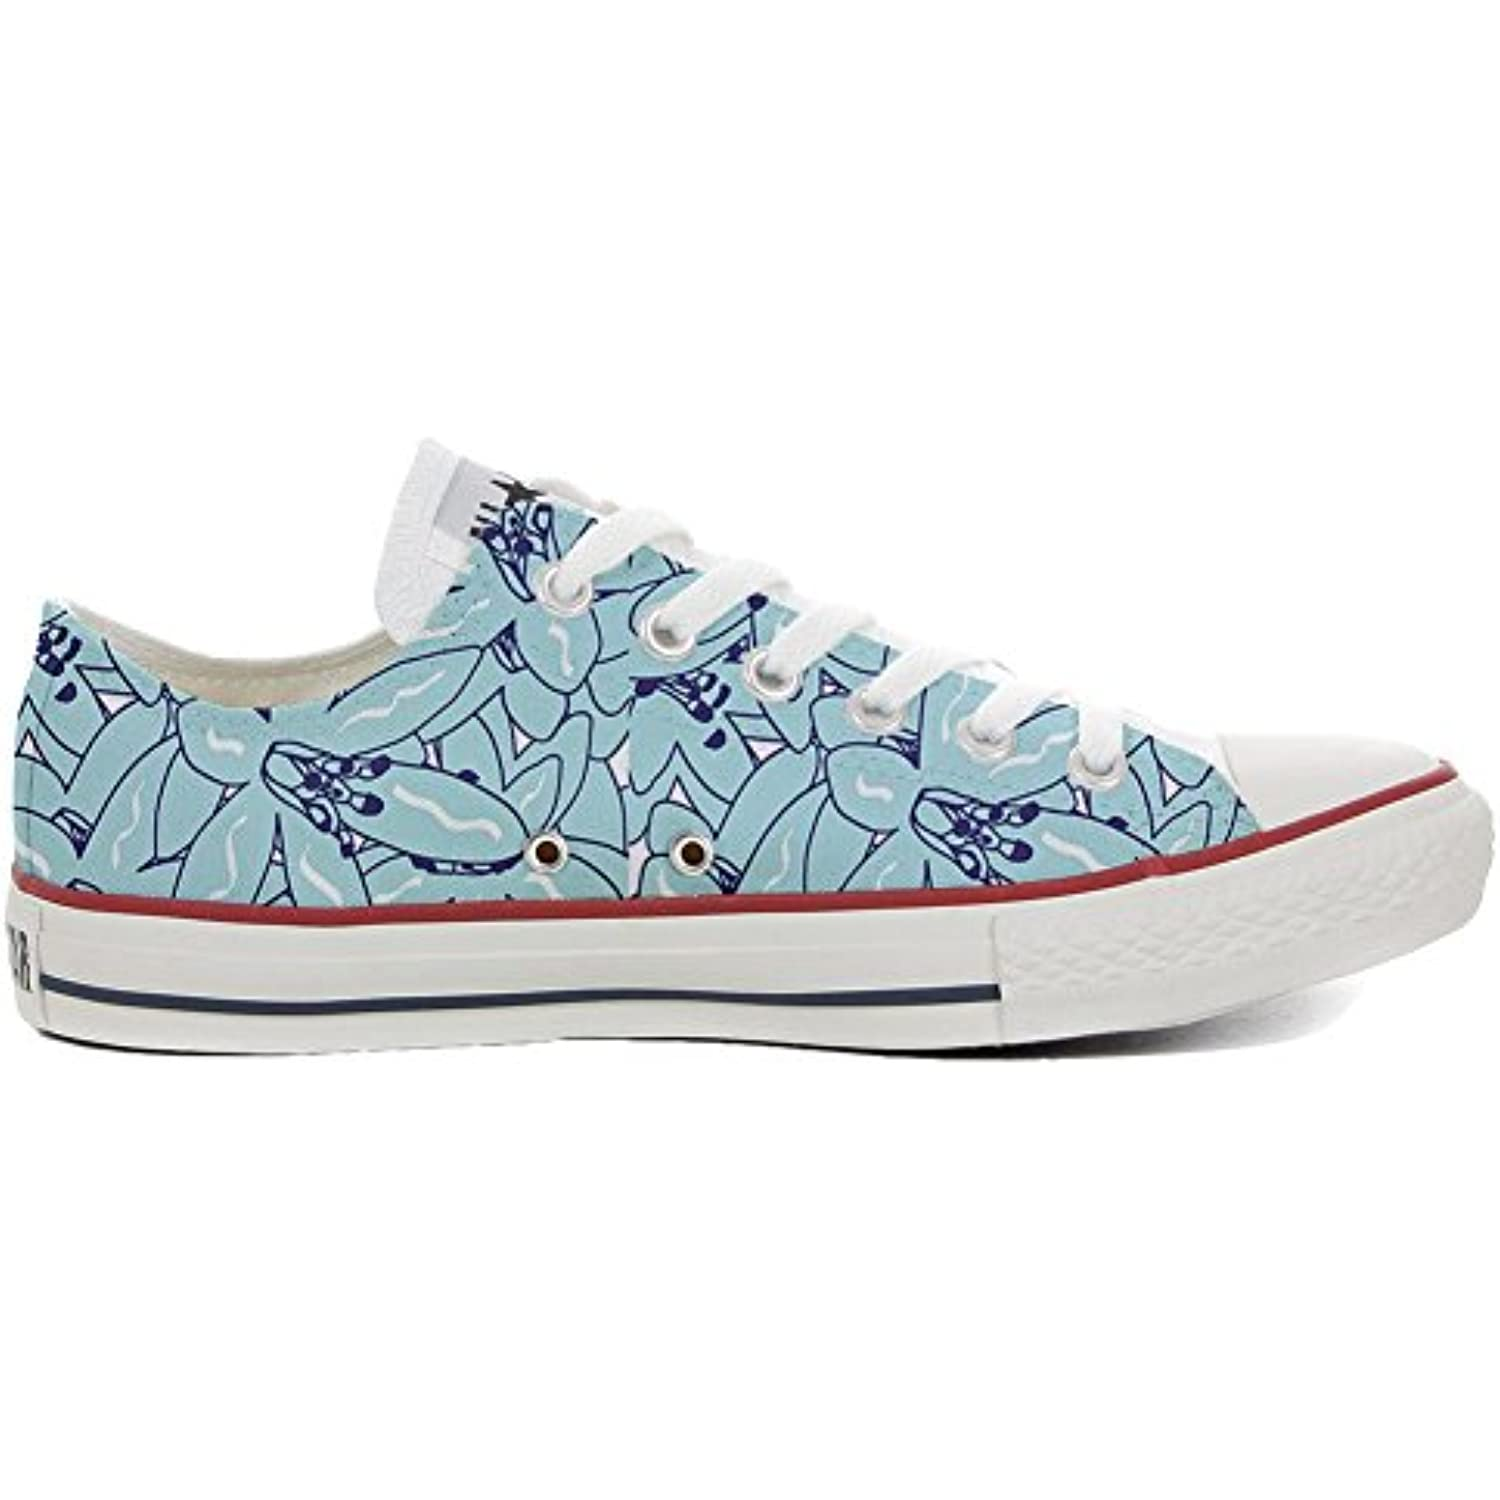 mys Converse All Chaussures Star Slim Chaussures All Coutume Mixte Adulte Produit Artisanal Light Paisley - B06X95W158 - c78a07